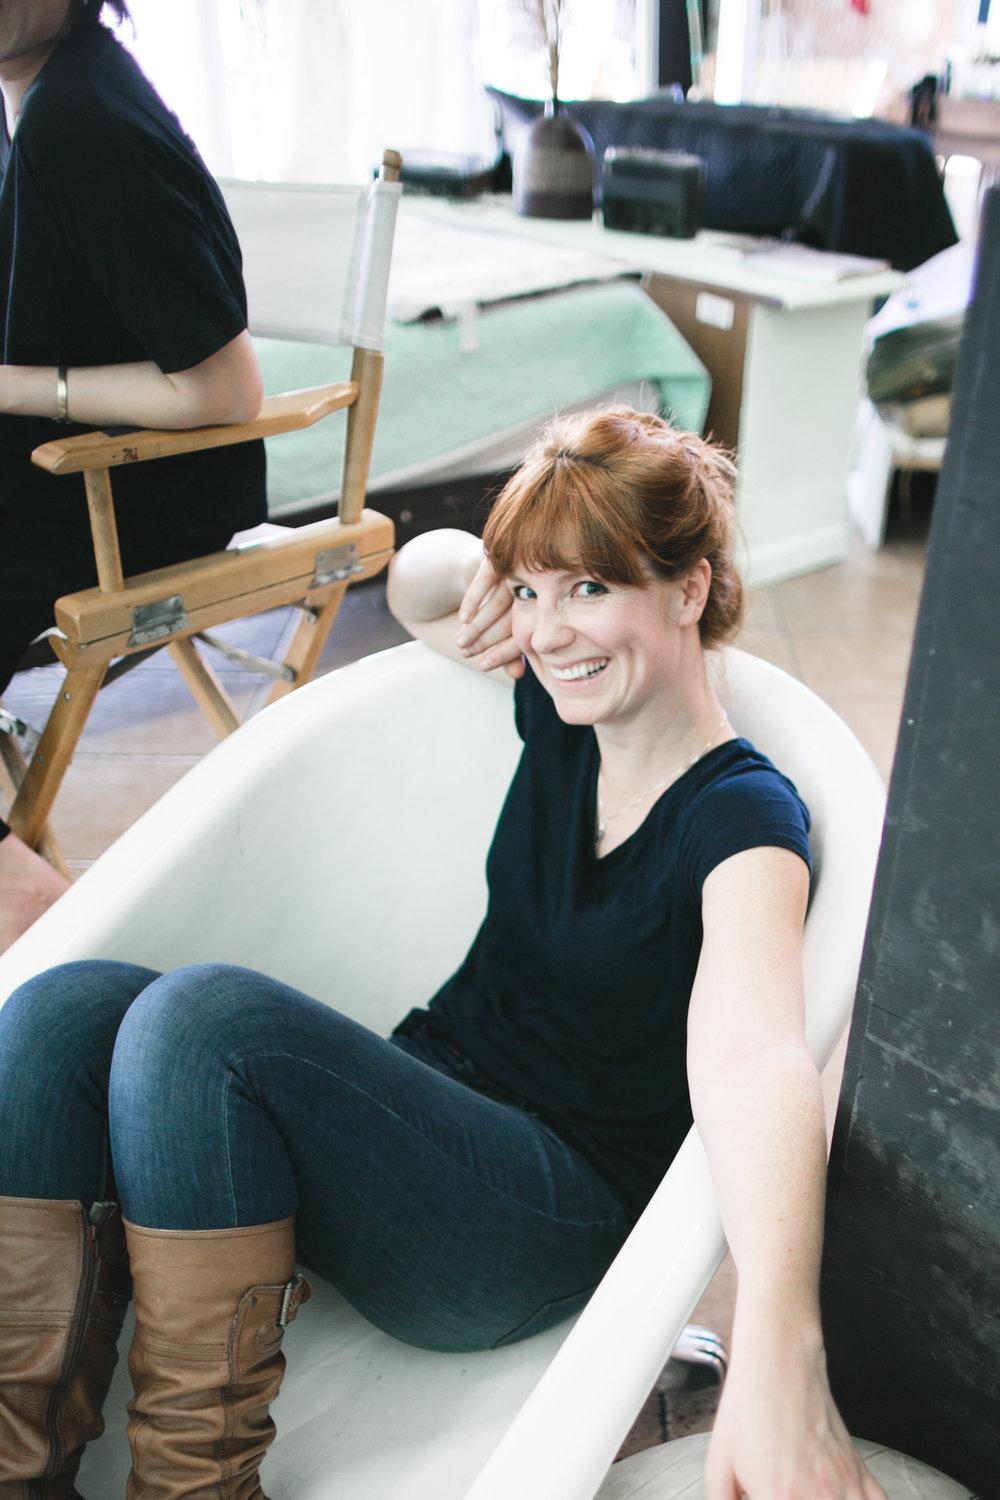 And sometimes, we just chill in tubs.  At least Sara does. :)